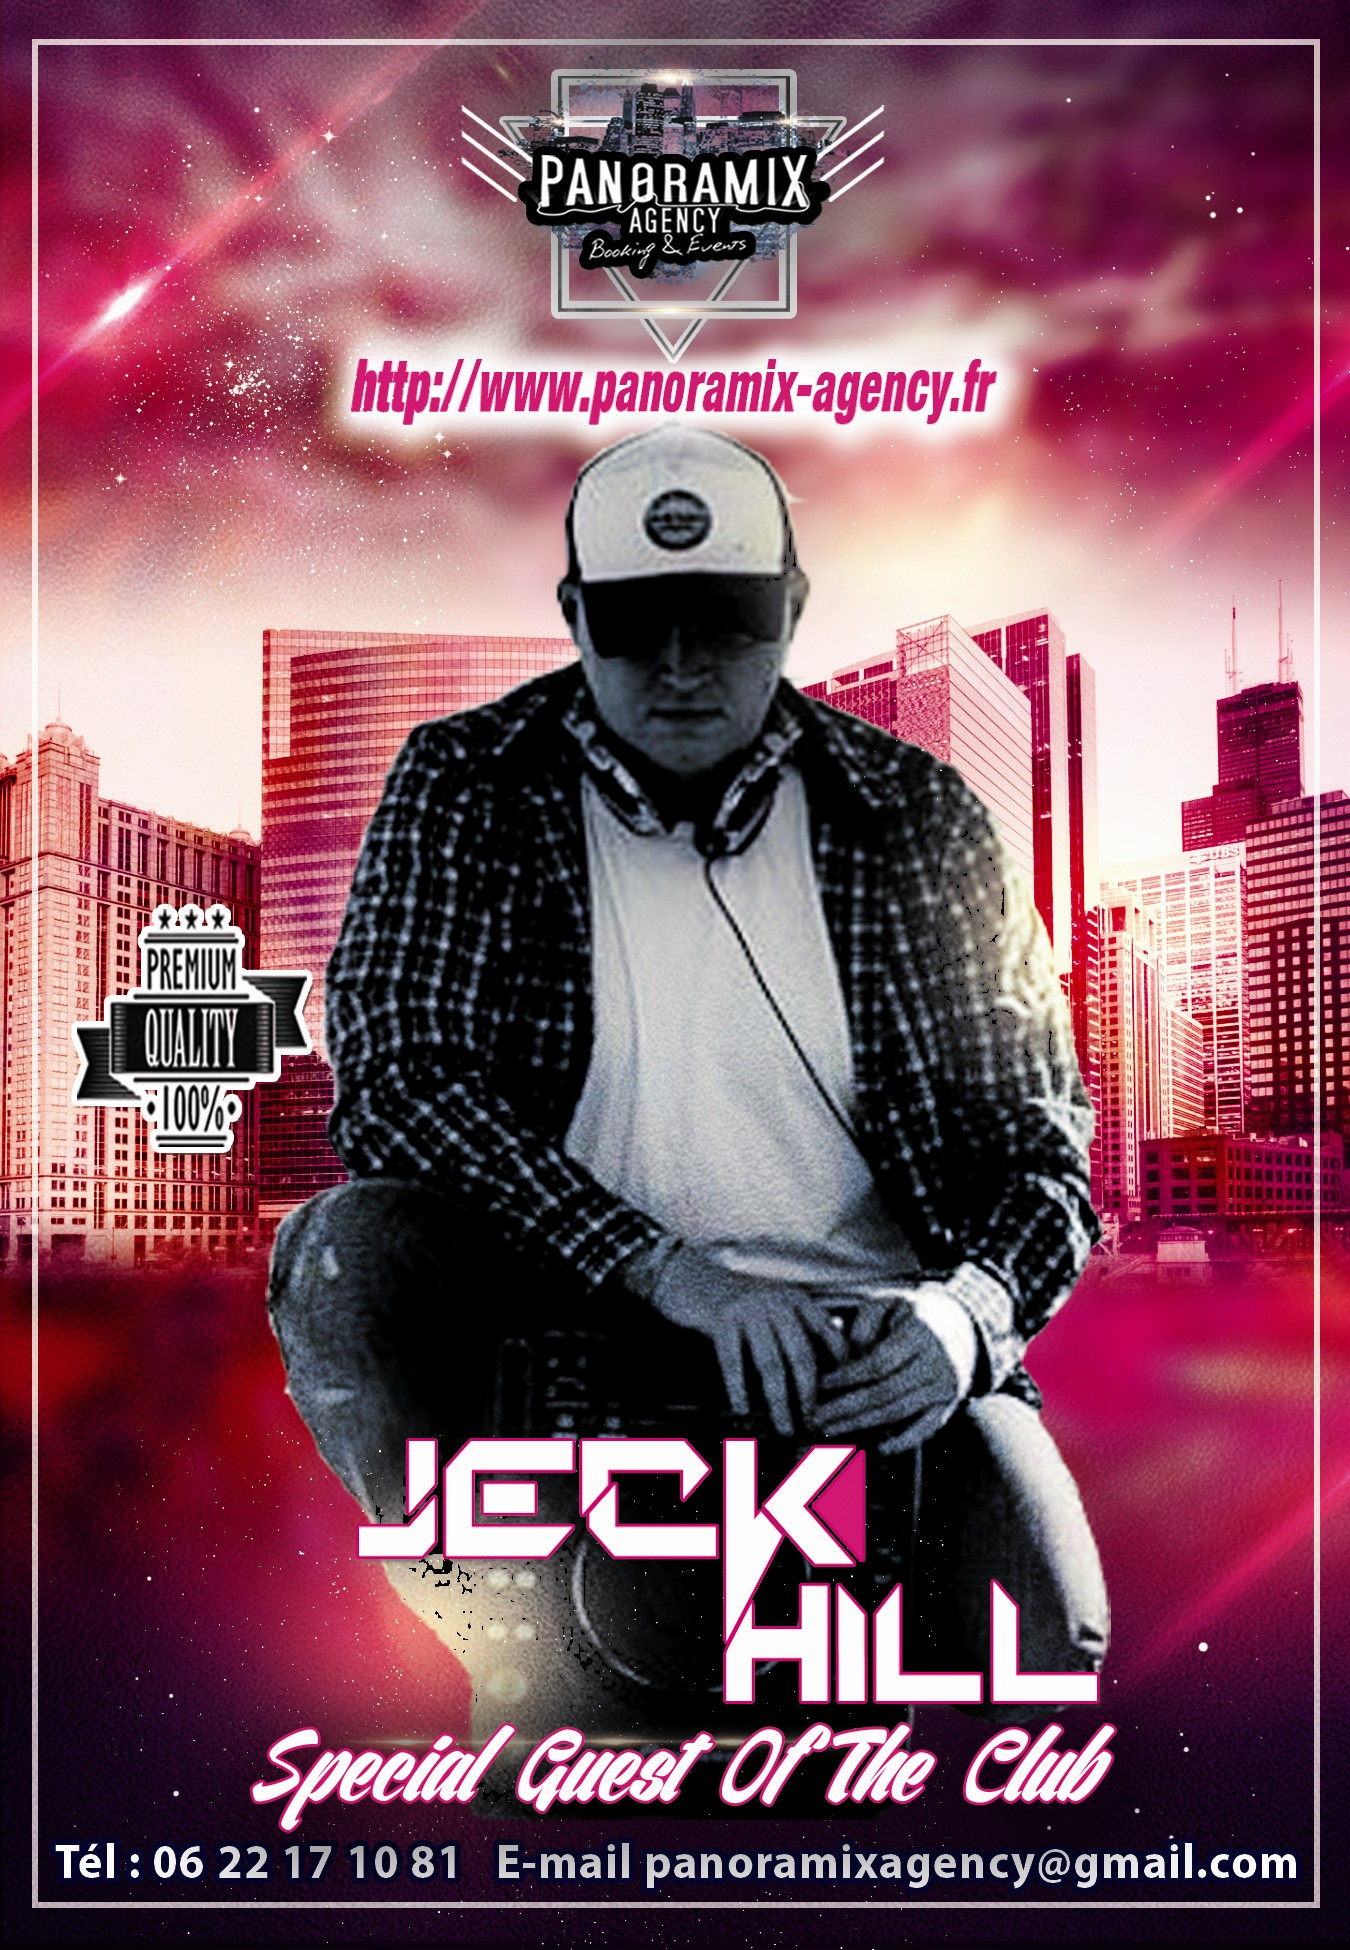 http://panoramix-radio-station.com/wp-content/uploads/2017/04/JECK-HILL-AFFICHE-PANORAMIX-AGENCY.jpg